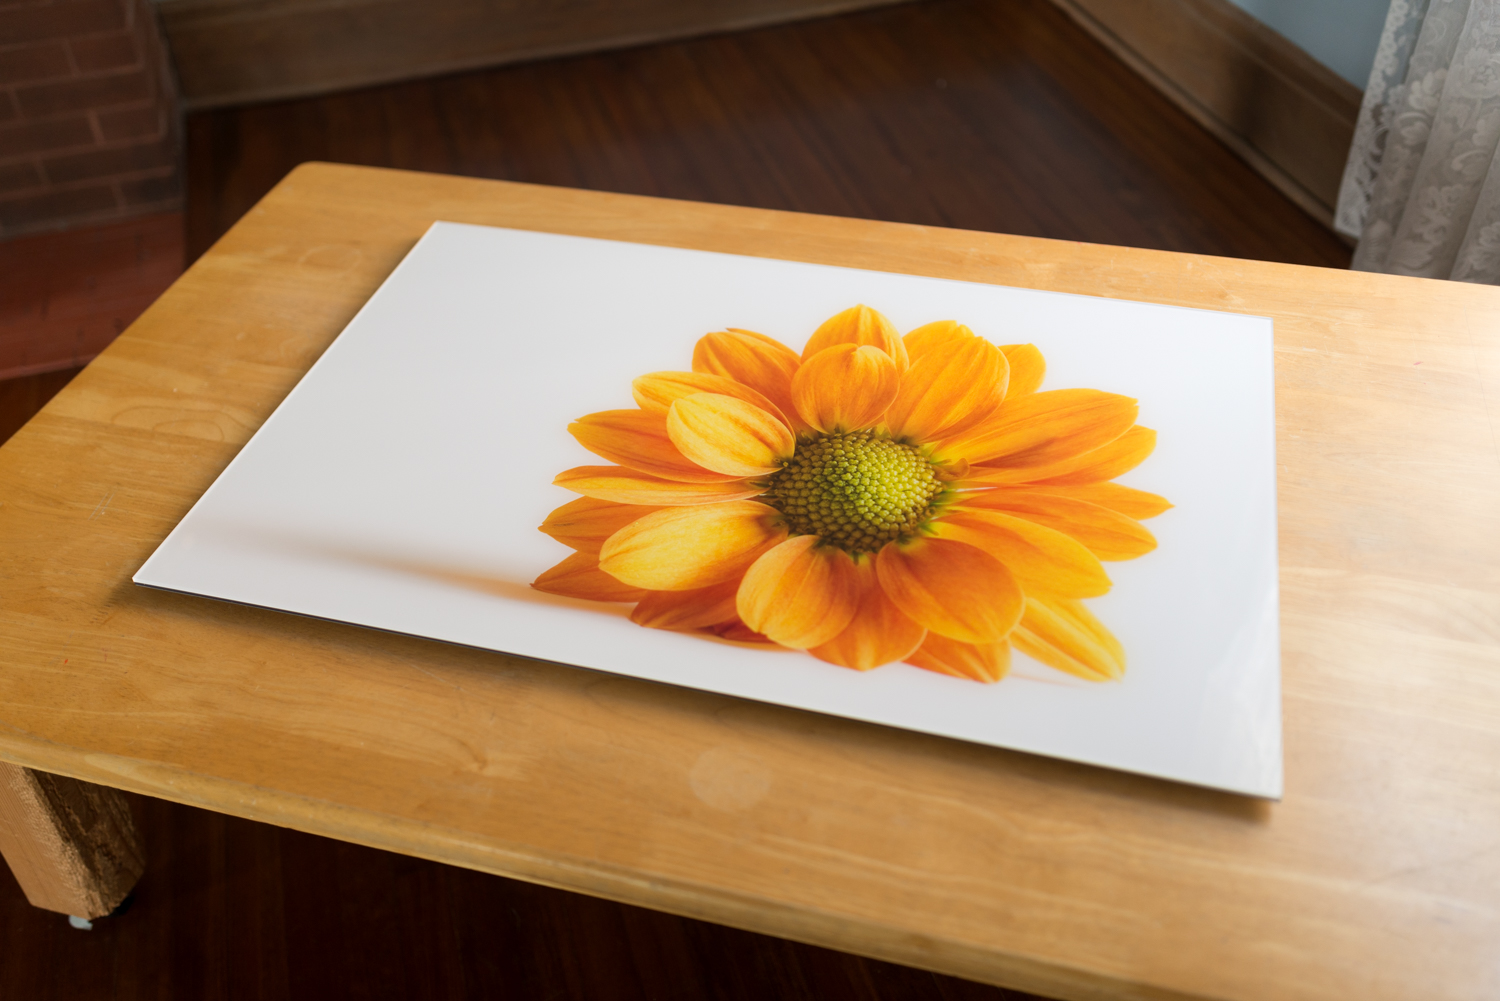 Print under acrylic glass, 24X36, top/side view.  A print under acrylic glass is a traditional print that is sealed between a crystal-clear acrylic glass (face) and an aluminum Dibond base. Silicone adhesive is applied around the borders to keep the print airtight and protected.